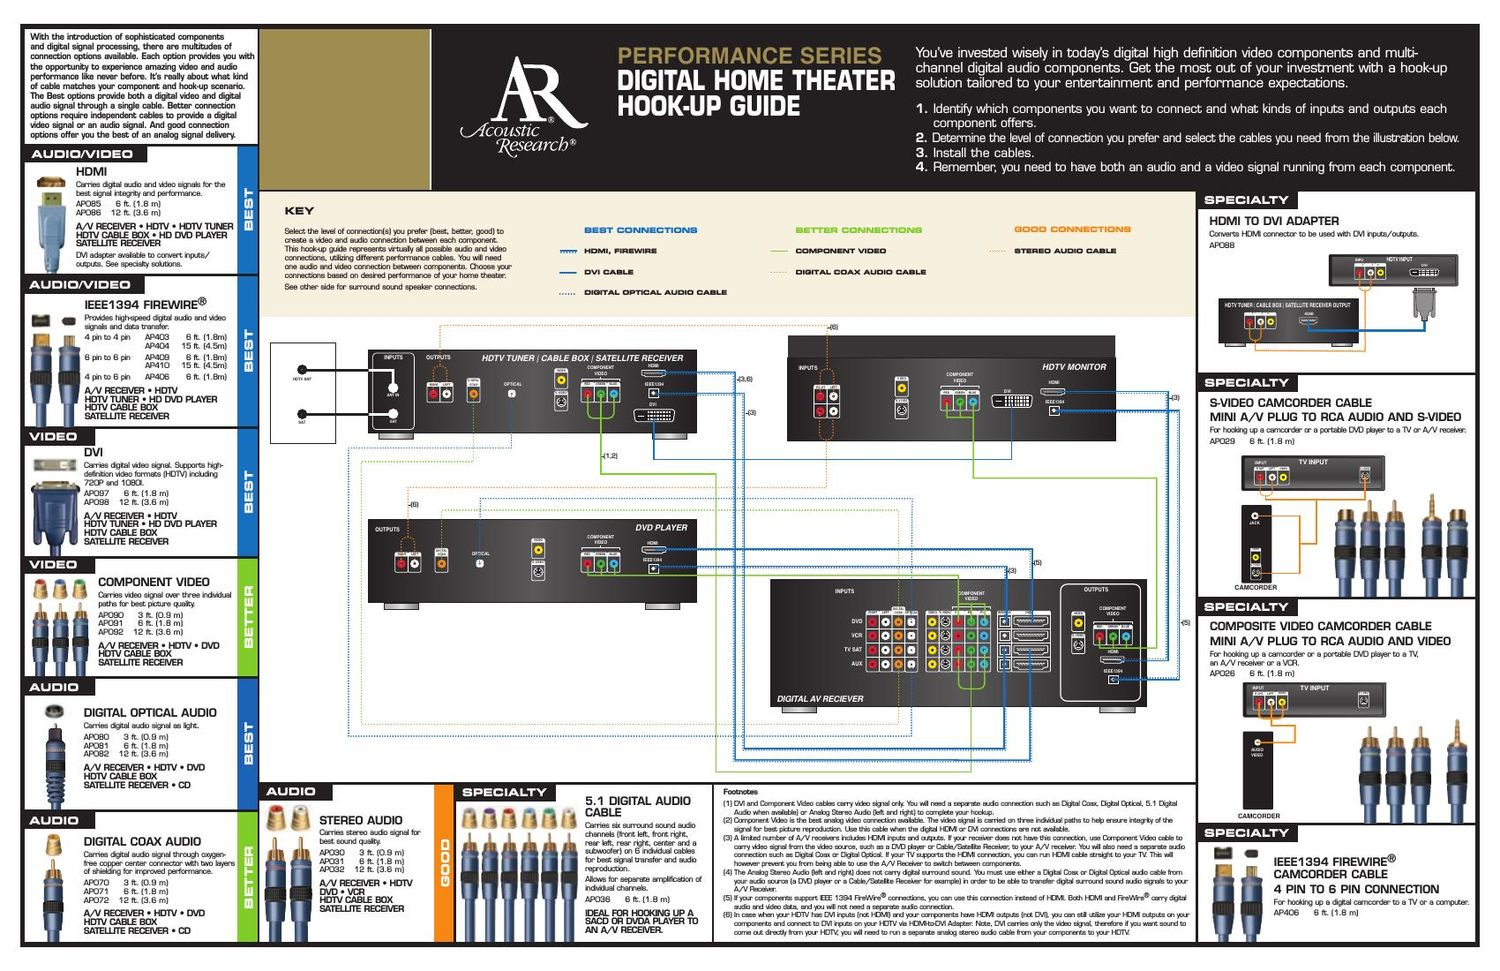 acoustic research Performance Series Owners Manual